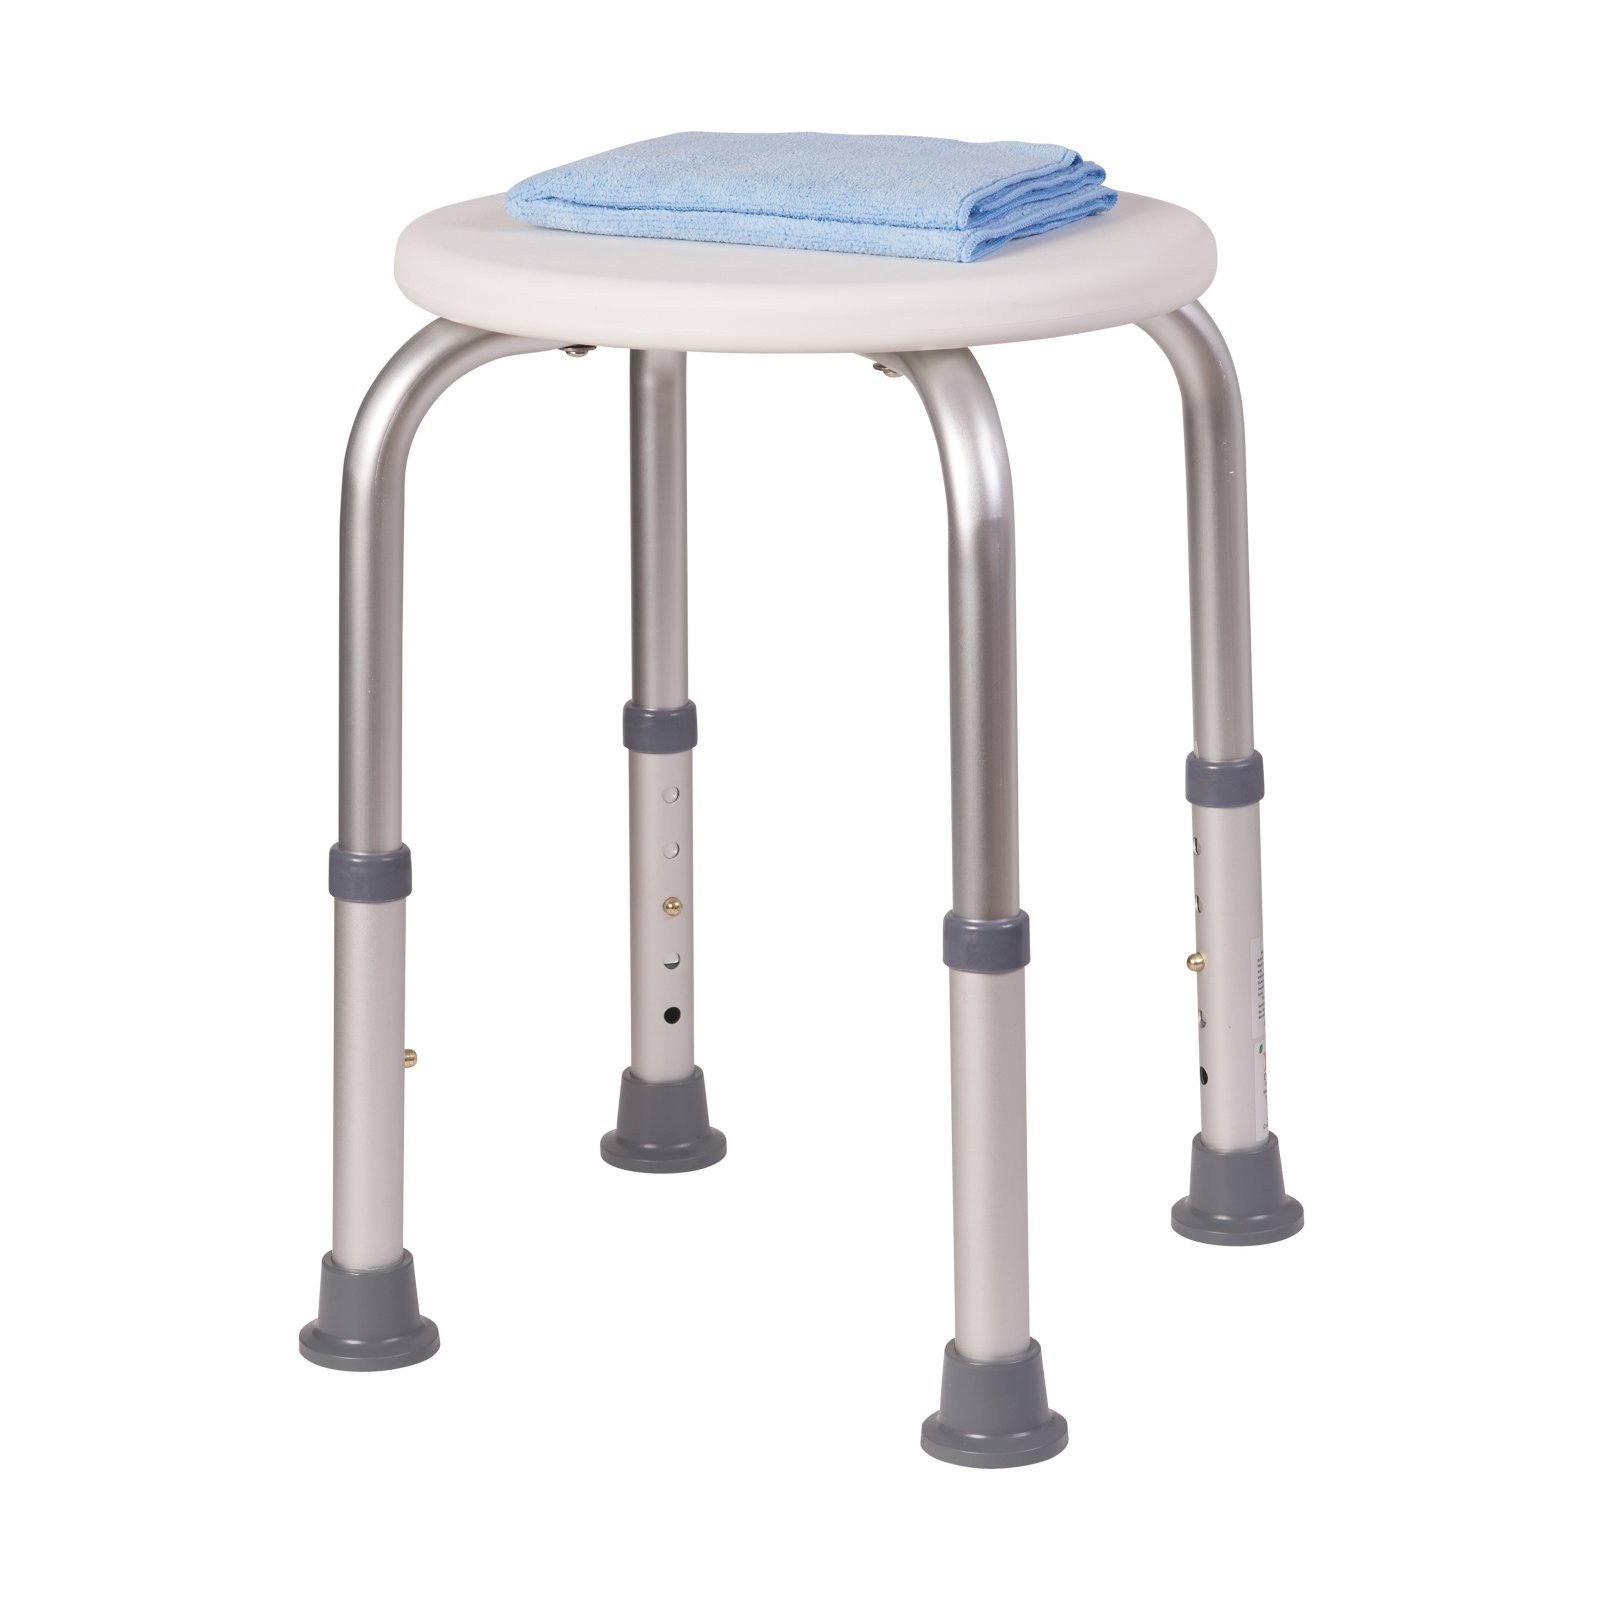 Ordinaire HealthSmart Extra Compact Lightweight Shower Stool With Adjustable Height,  Excellent For Small Showers And Bathtubs, RVs And Boats, White